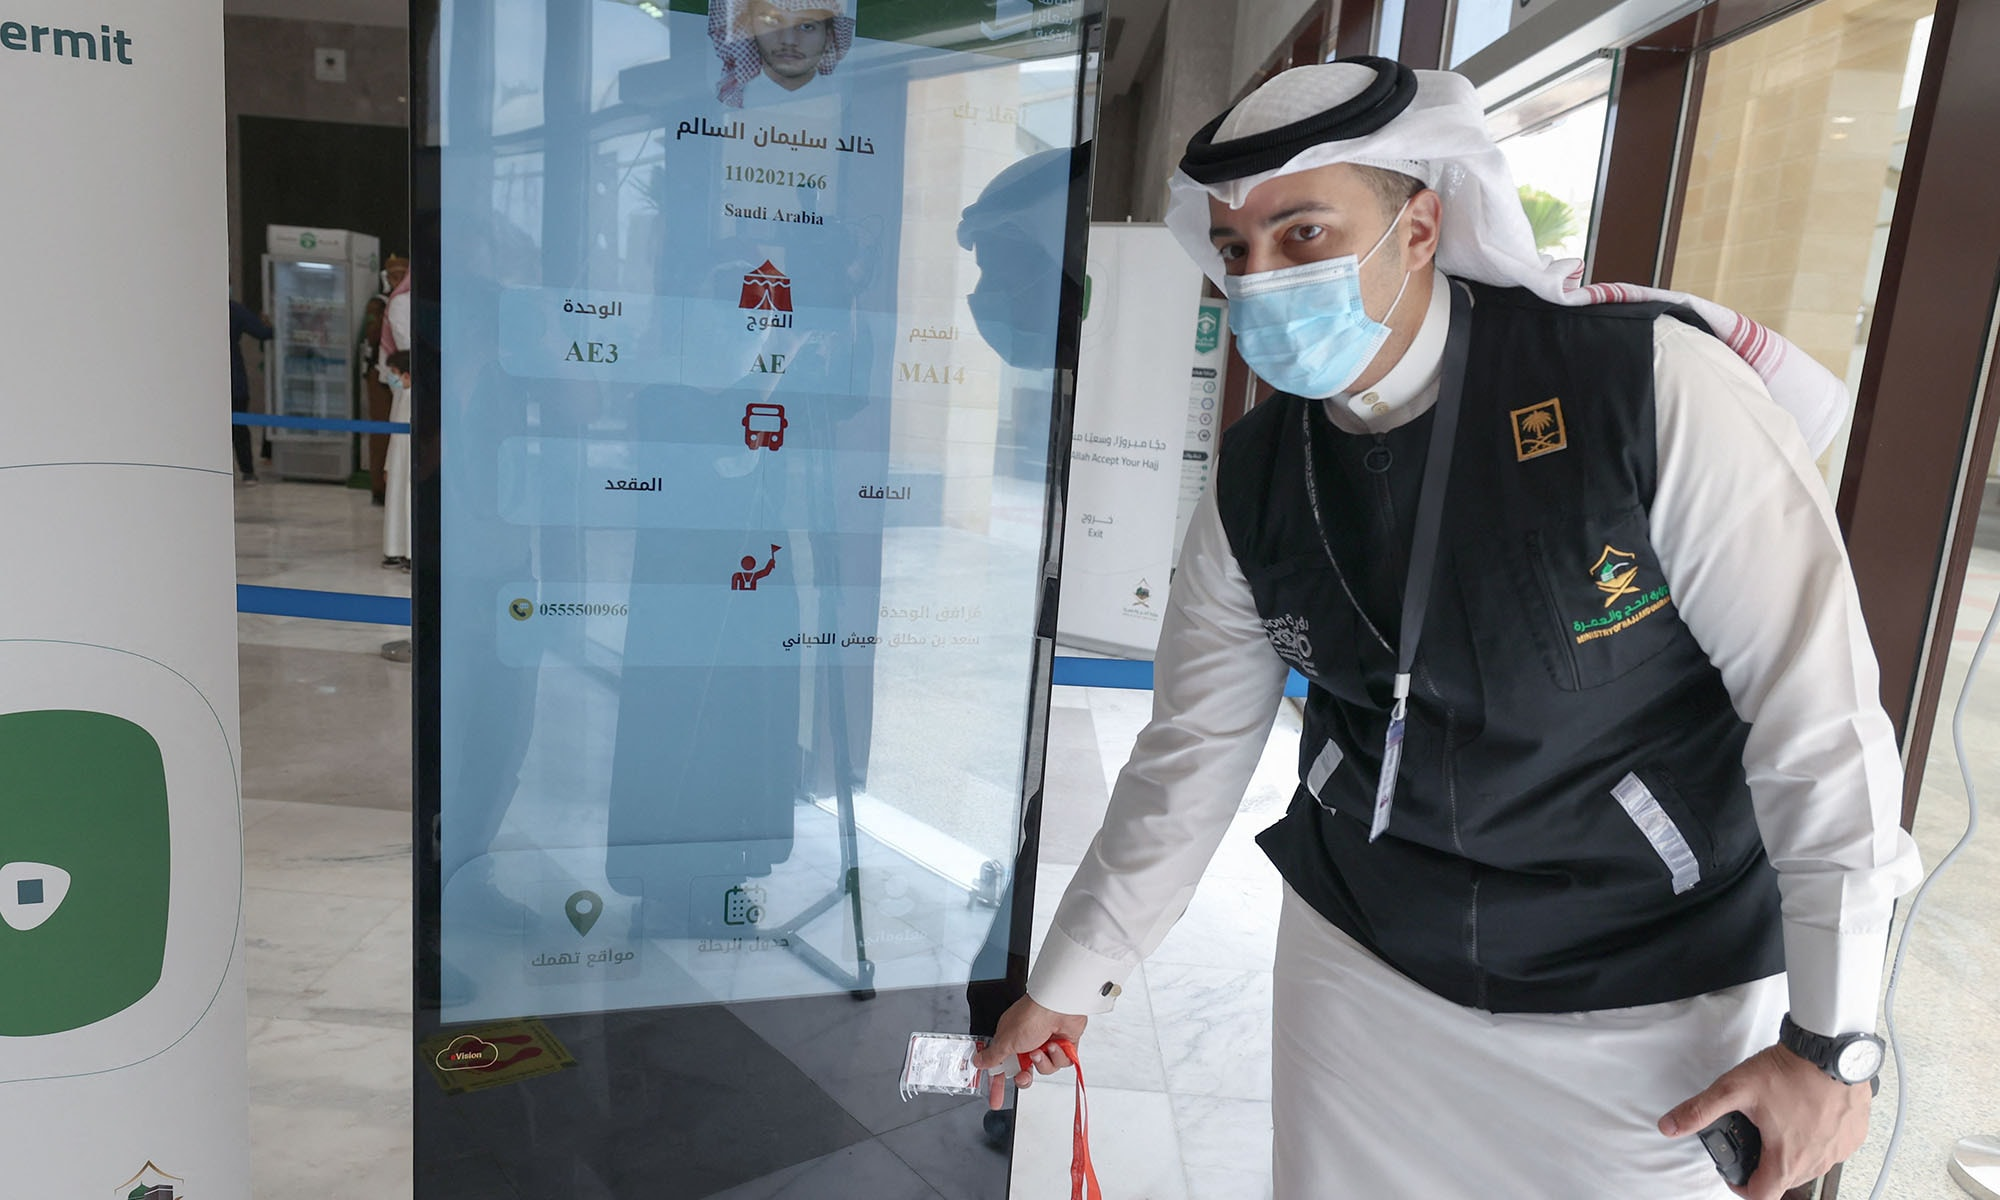 A Saudi member of staff scans a pilgrim's Haj card, allowing contactless access to religious sites, accommodation and transport, at a reception centre in Mecca on July 18, 2021. The plastic cards are available in green, red, yellow or blue, with the colour corresponding to markings on the ground guiding pilgrims through the different stages of Haj. Each card contains basic information about each pilgrim including their registration number, exact location of their accommodation, mobile phone number and the ID number of their guide. — AFP